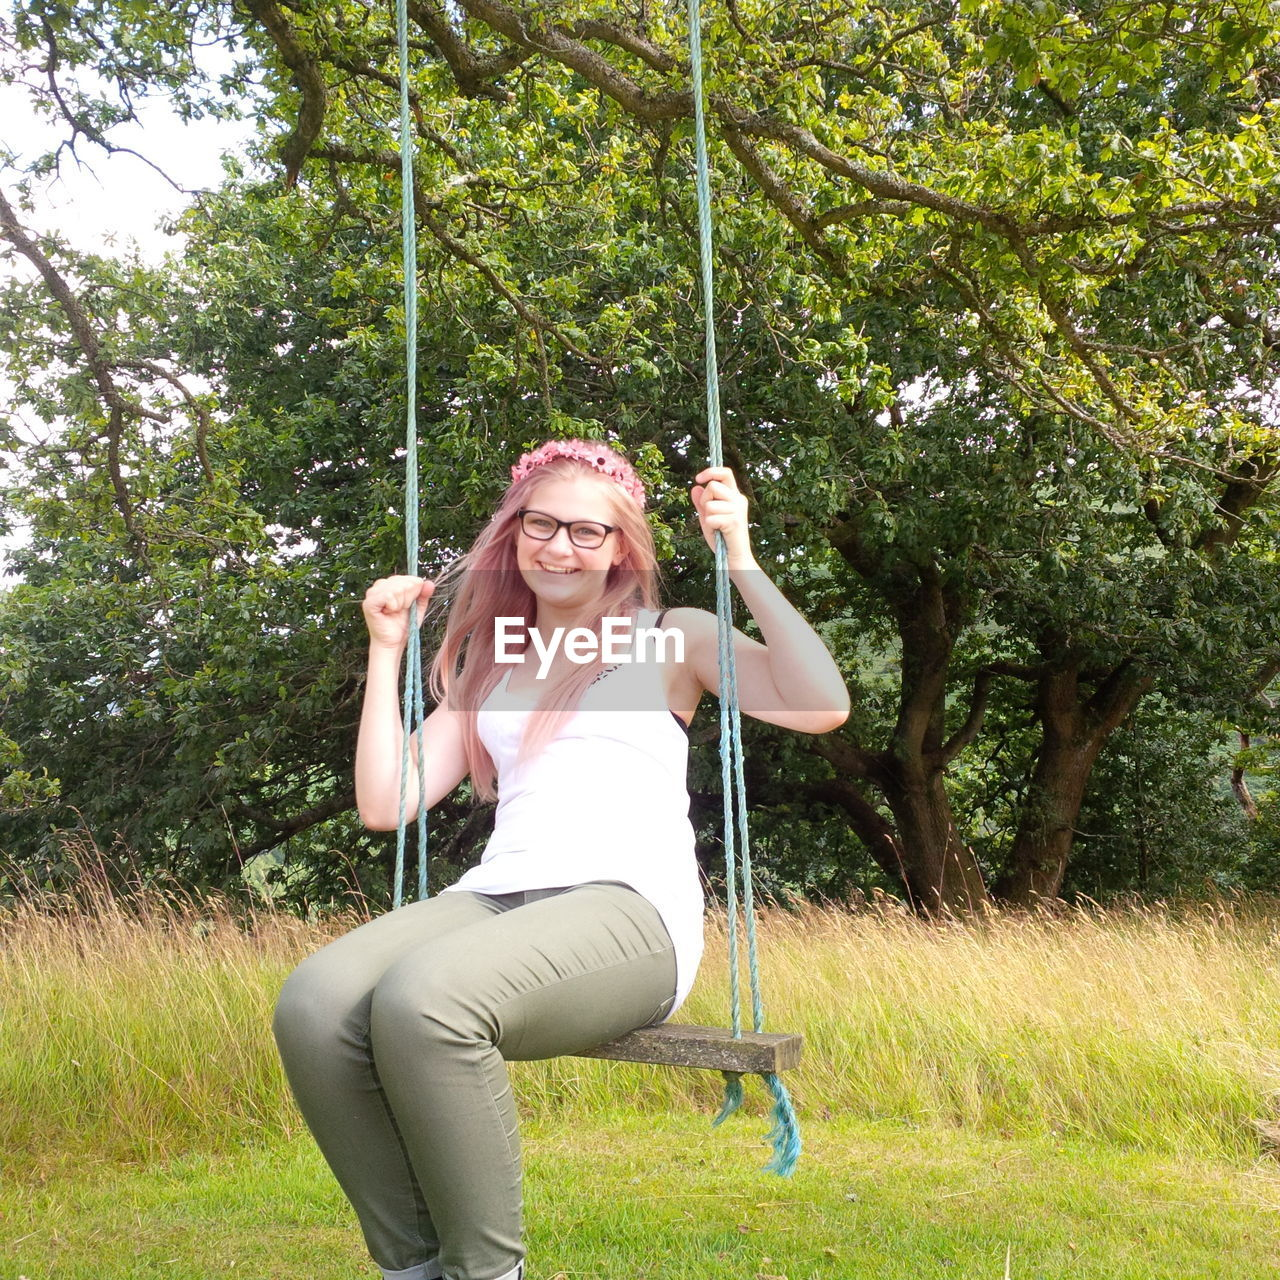 tree, smiling, looking at camera, real people, leisure activity, one person, happiness, casual clothing, rope swing, portrait, young women, day, full length, front view, young adult, lifestyles, growth, swing, holding, outdoors, grass, nature, cheerful, beautiful woman